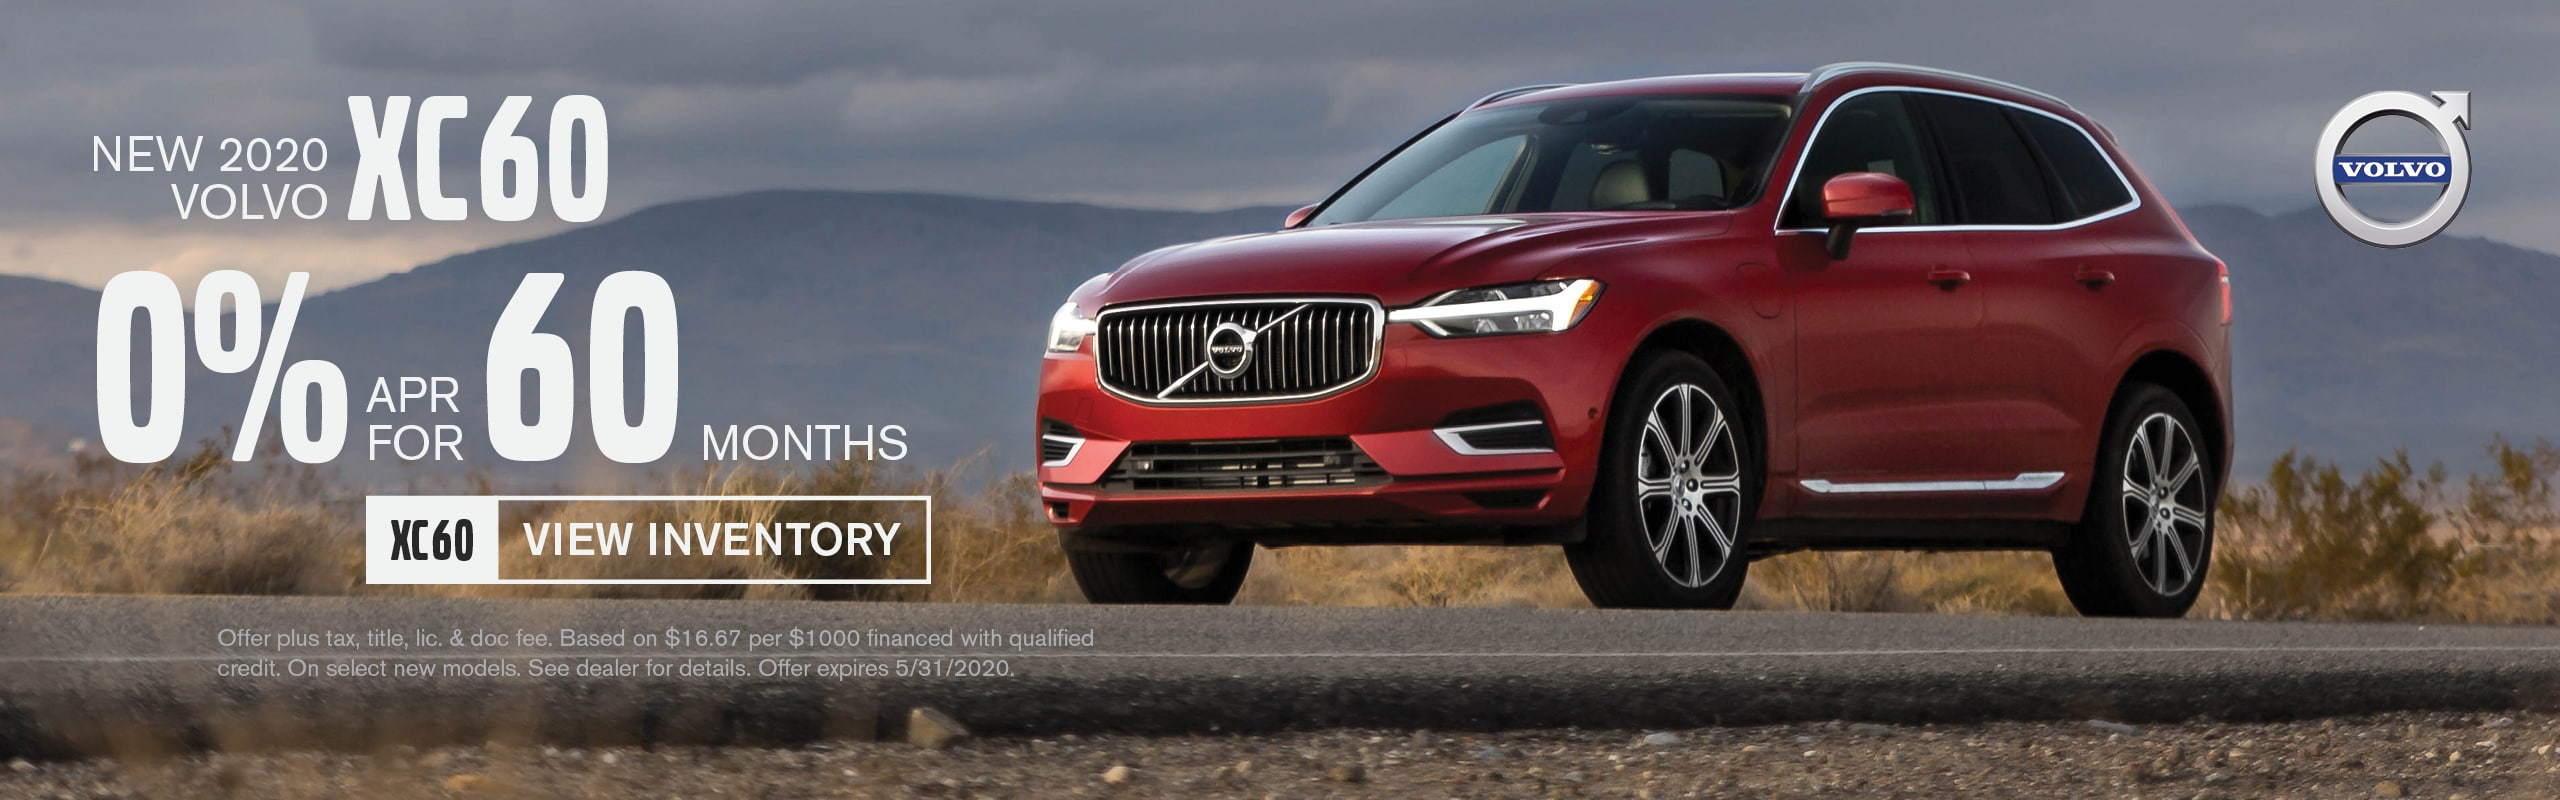 XC60 Lease Deal